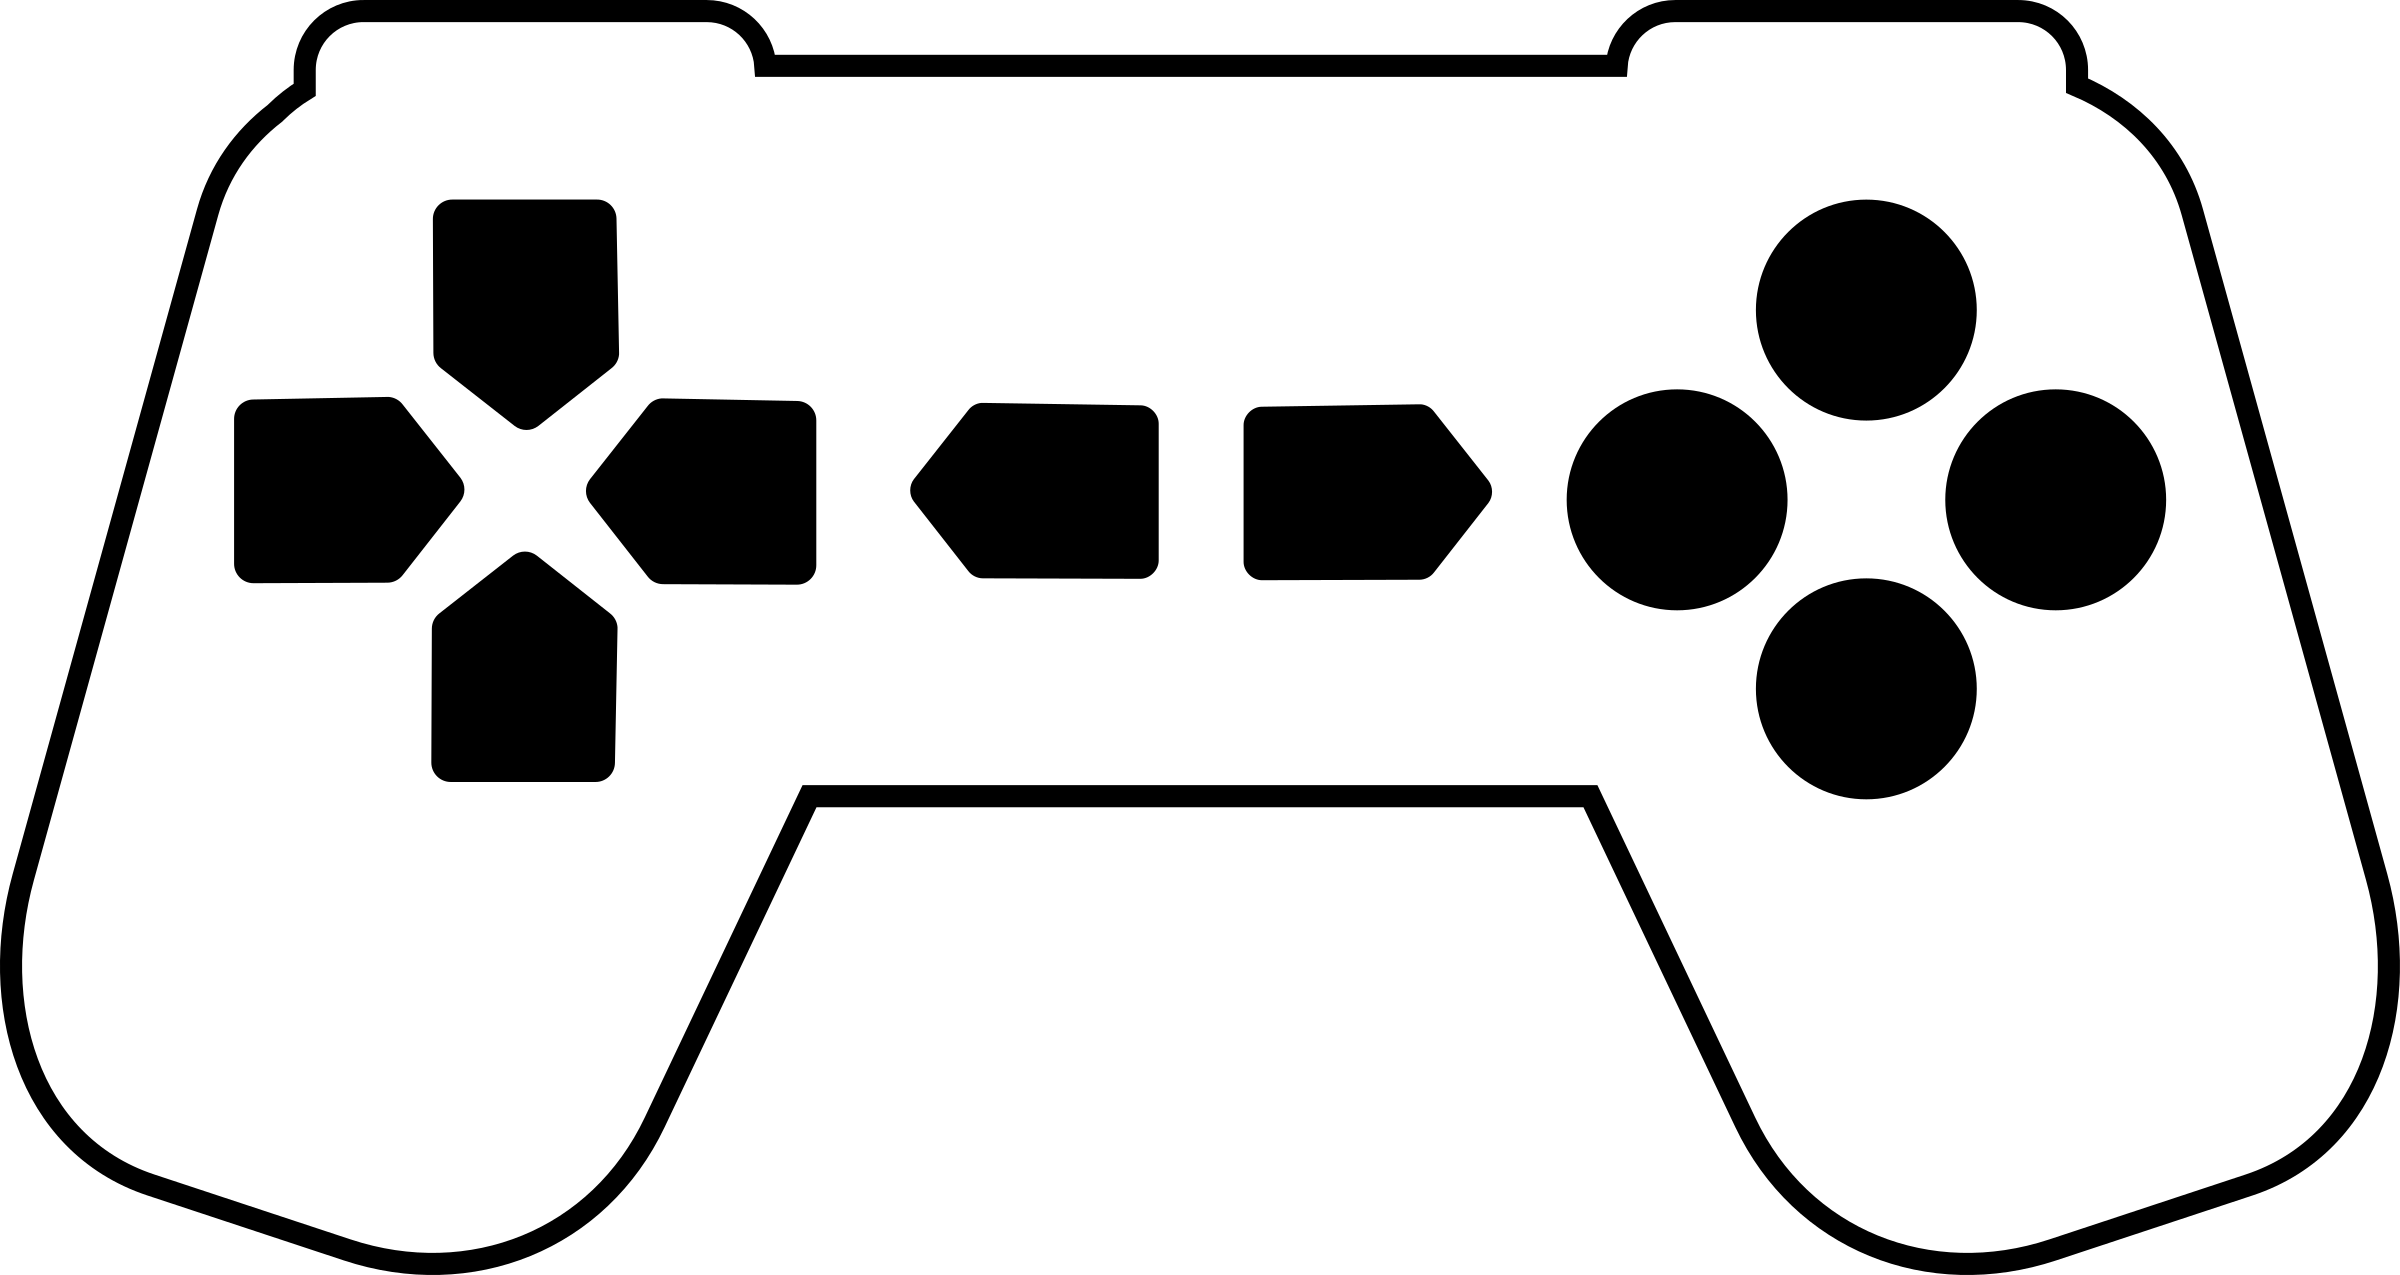 Game Black And White Png - Game PNG Black And White Transparent Game Black And White.PNG ...